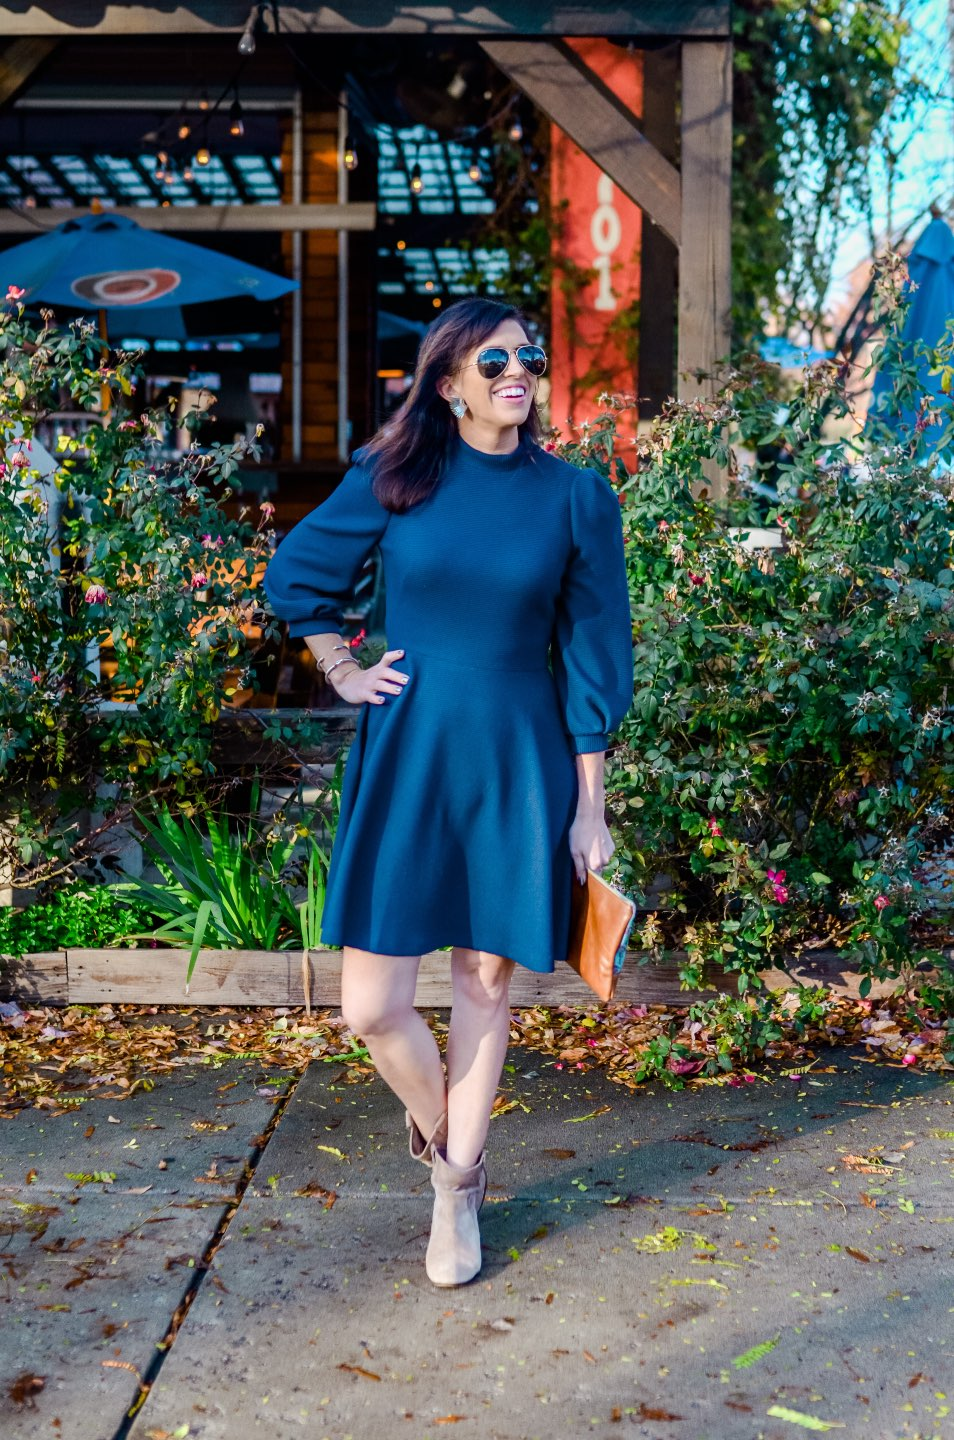 Holiday Style and Outfit Inspiration - I'm Fixin' To - @mbg0112 | Holiday Style and Outfit Inspiration by popular North Carolina fashion blog, I'm Fixin' To: image of a woman outside wearing a Gal Meets Glam Maggie Dress, Nordstrom 'Aviator' Polarized 62mm Sunglasses, Vince Camuto ankle boots, Etsy Up a Tree Cup a Tea Pine Cone Bloom Overshot Textile and Leather Clutch, Nordstrom David Yurman Cable Classic Buckle Bracelet with 18K Gold, Nordstrom David Yurman Cable Classics Bracelet with 14K Gold, Nordstrom Mignonne Gavigan Earrings, and Sephora Bite Beauty lipstick.